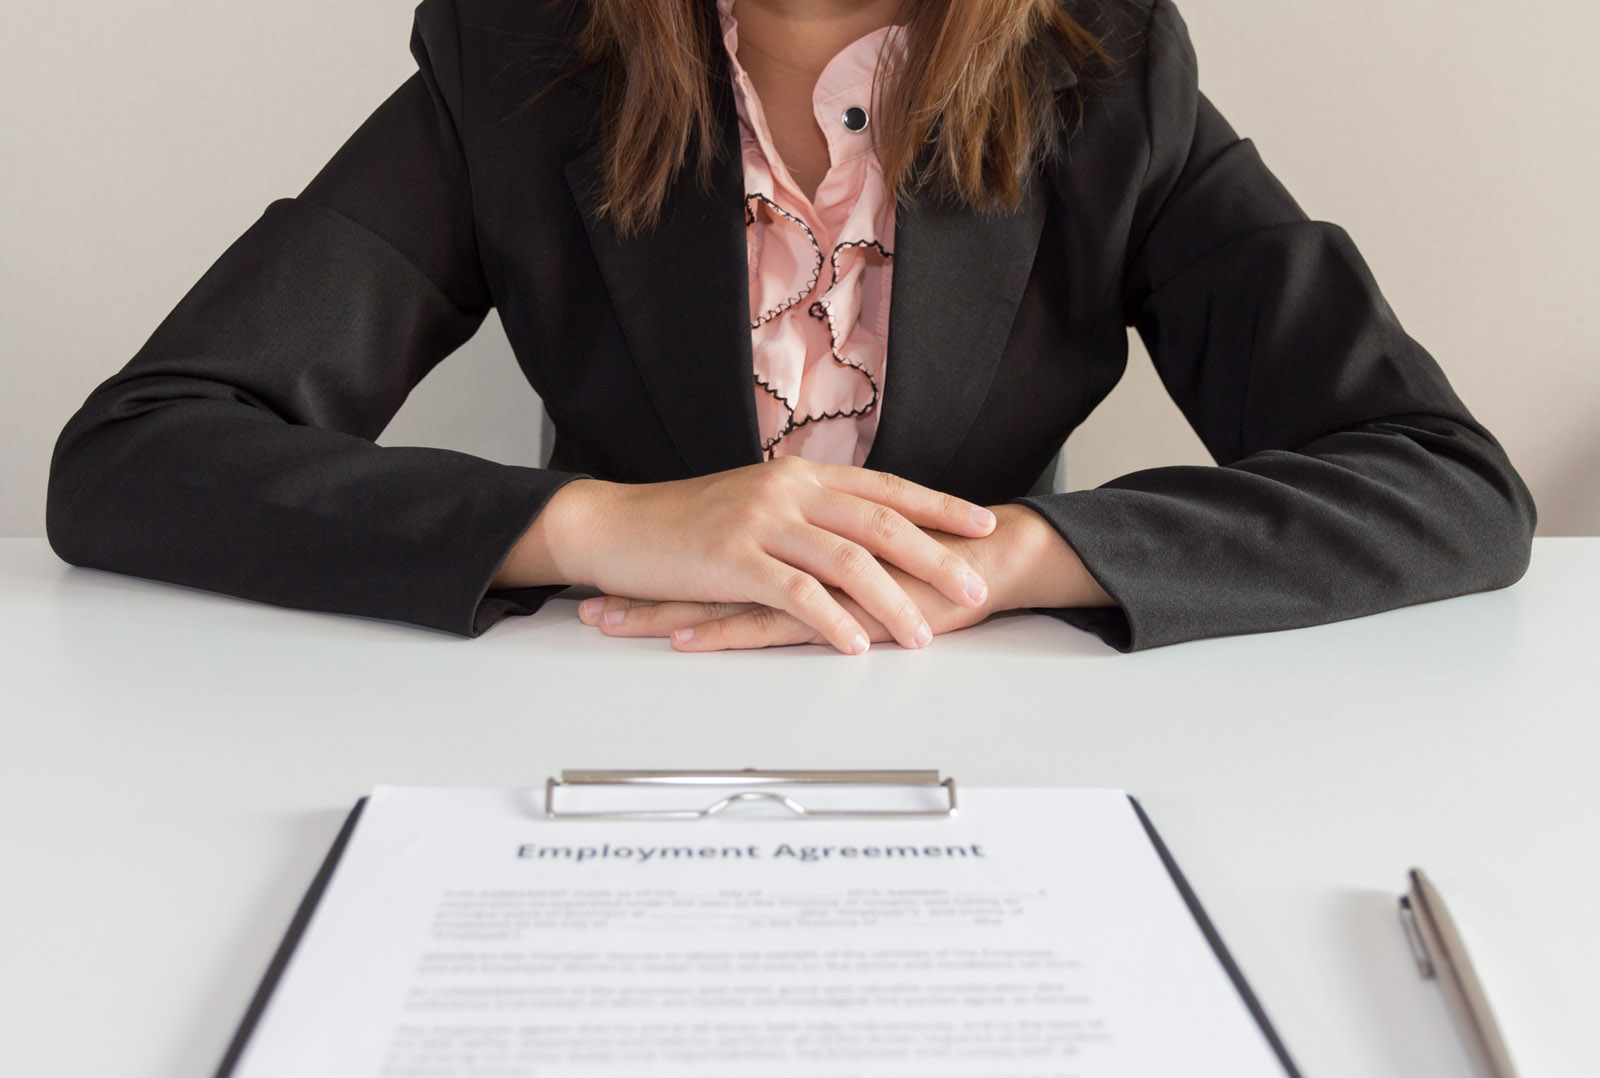 Bad credit could cost job candidates that next offer